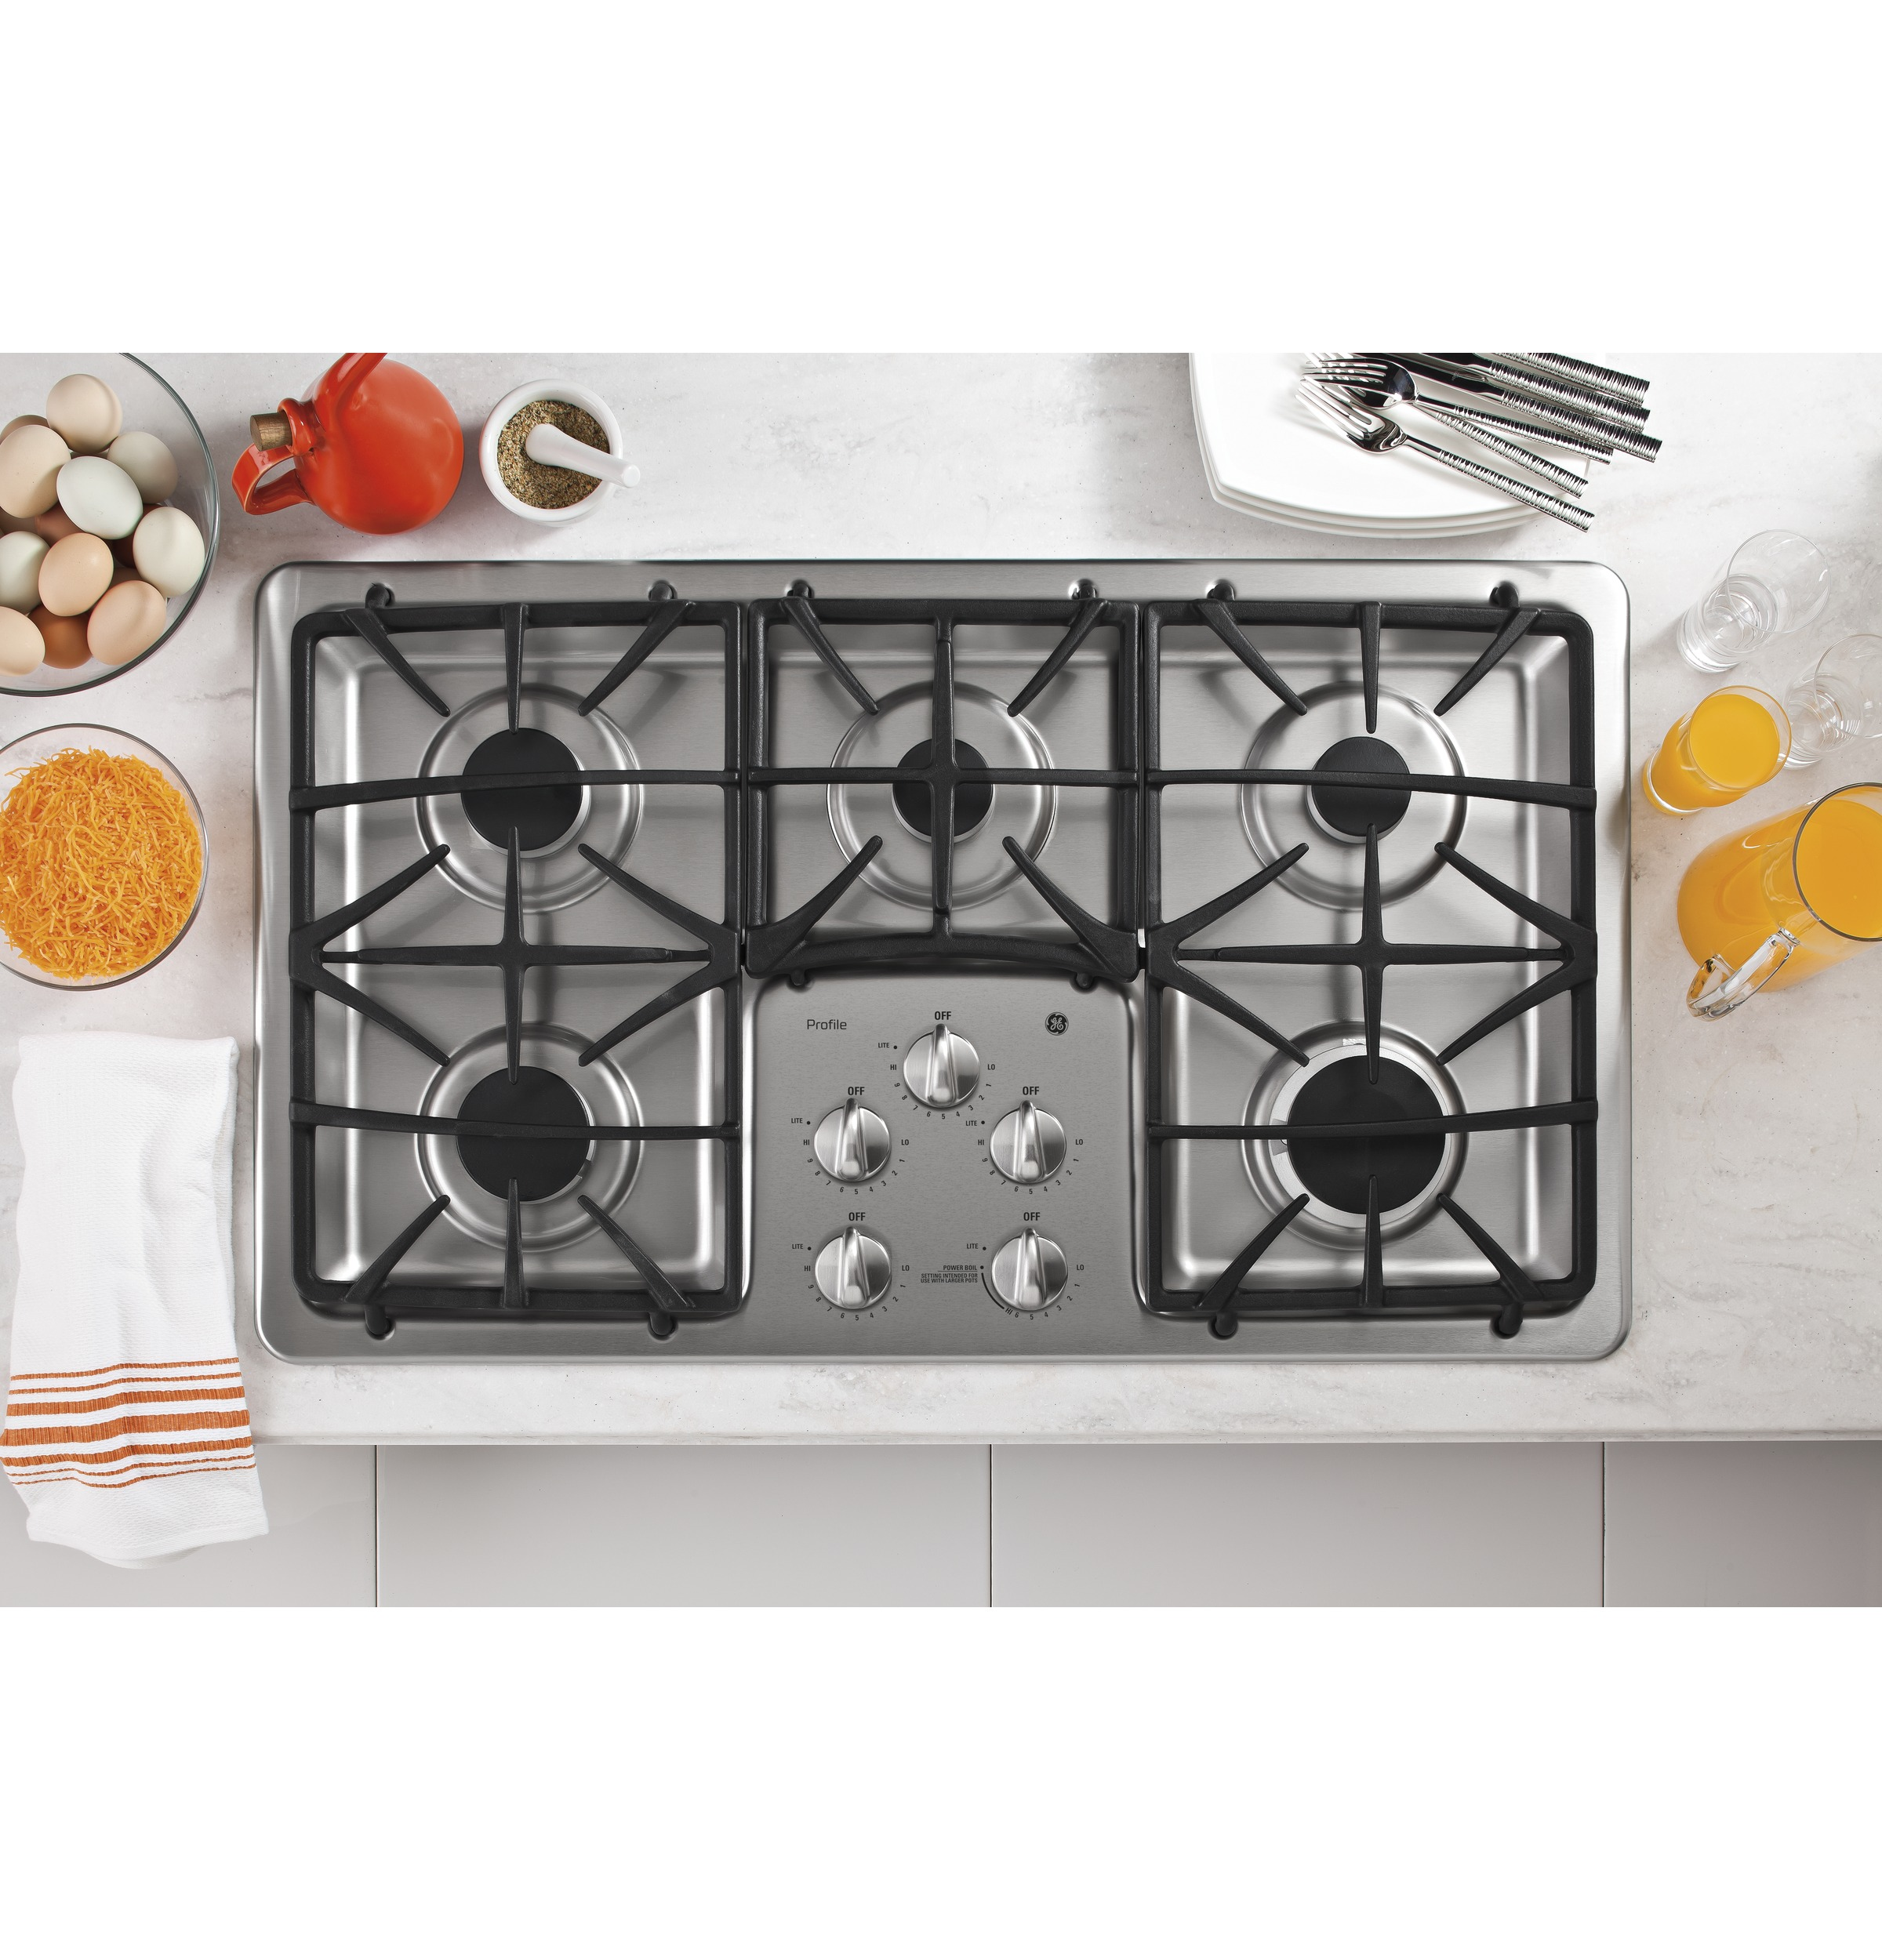 36 inch gas cooktop with downdraft - Product Image